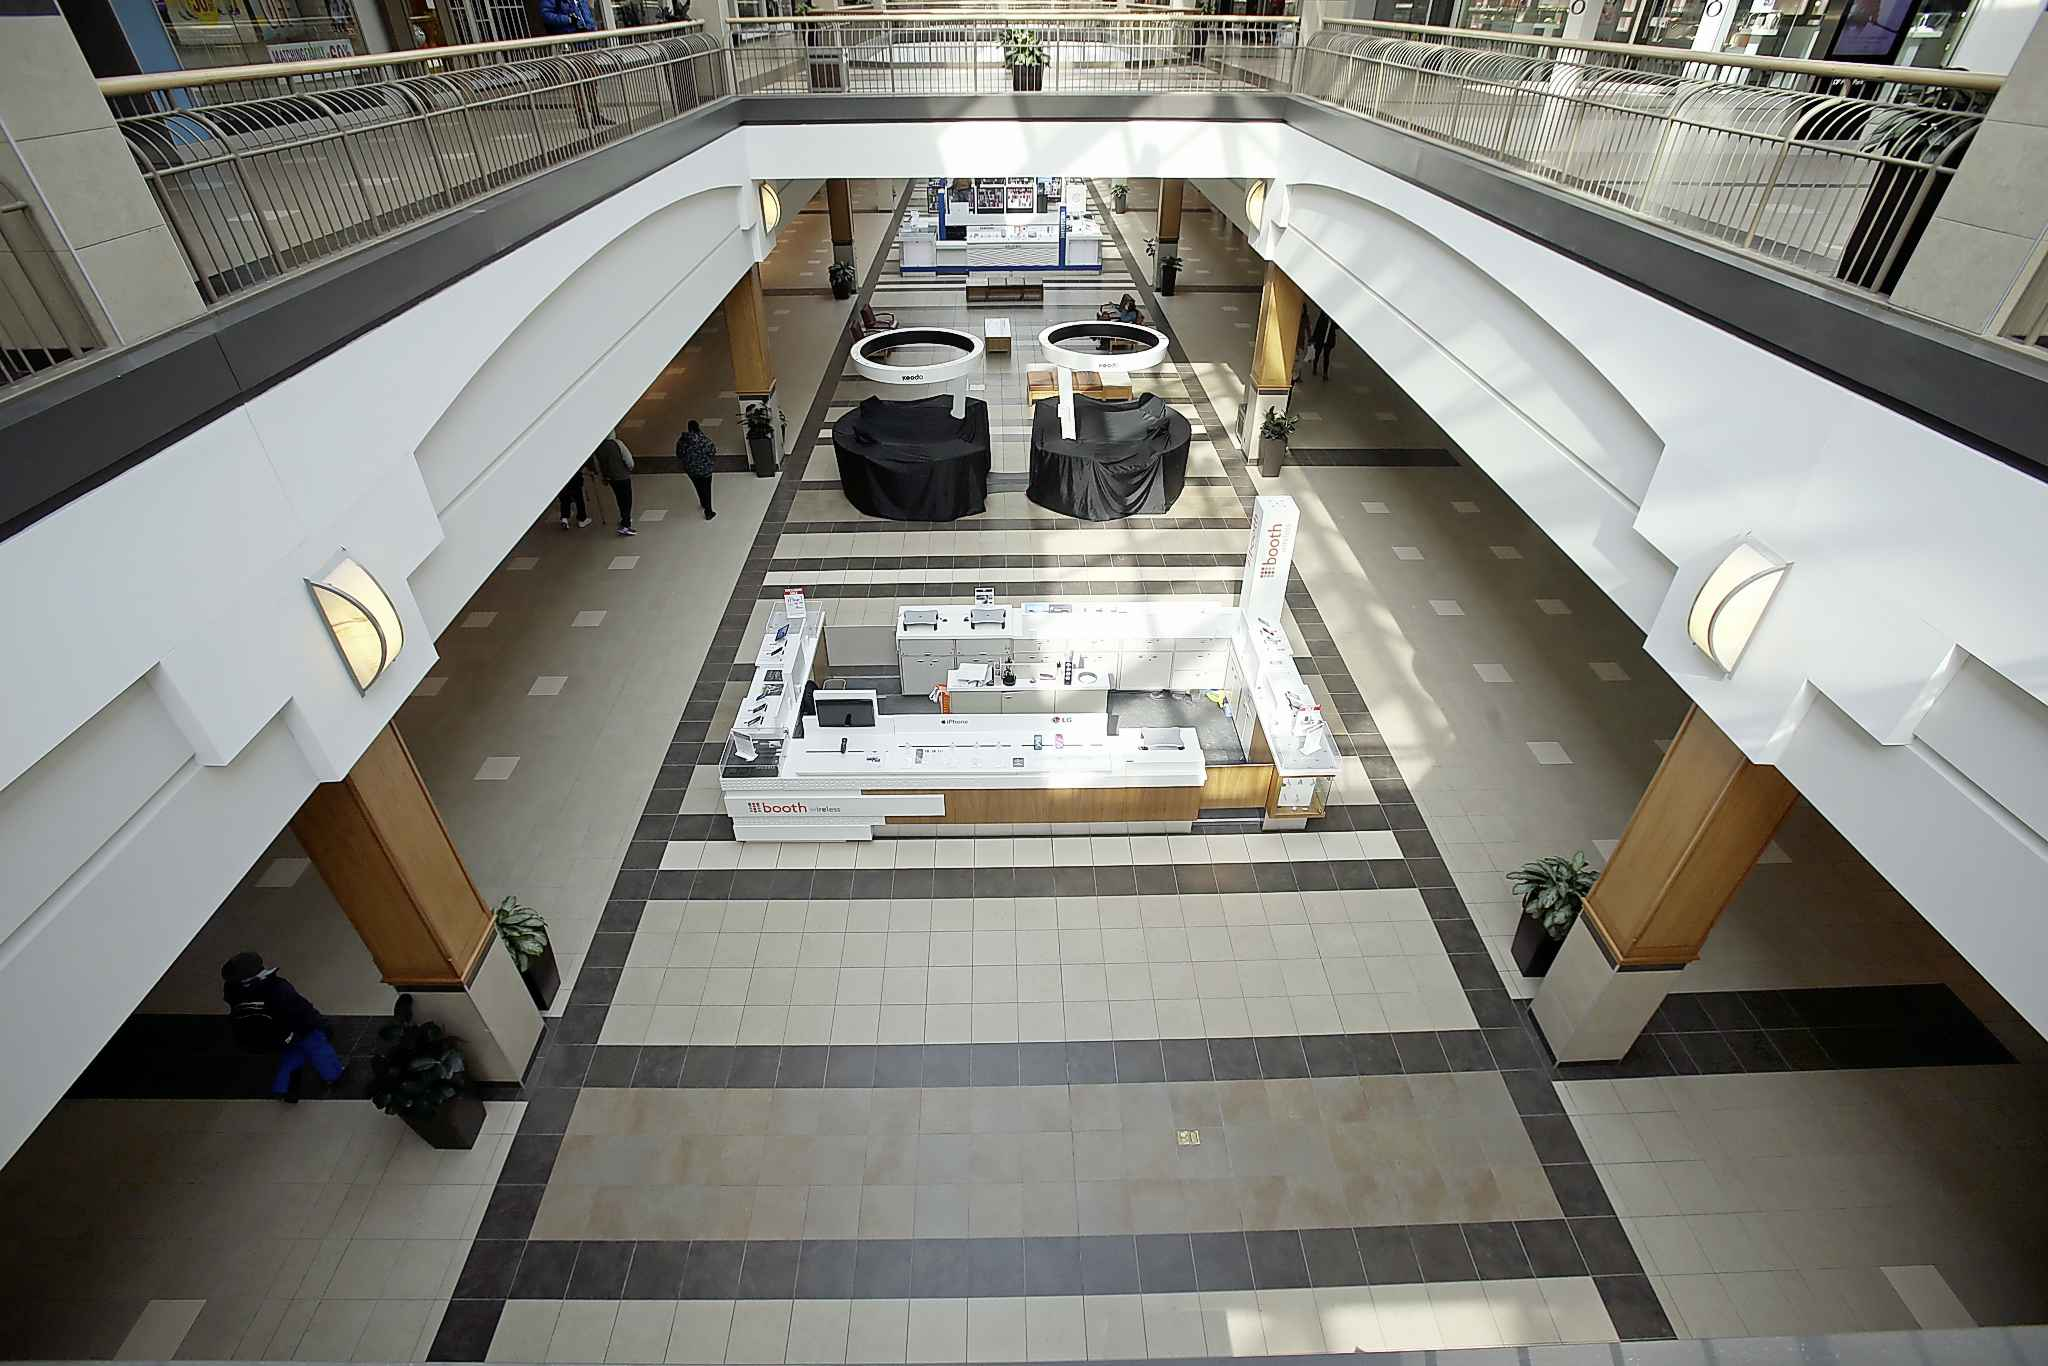 SHANNON VANRAES / WINNIPEG FREE PRESS